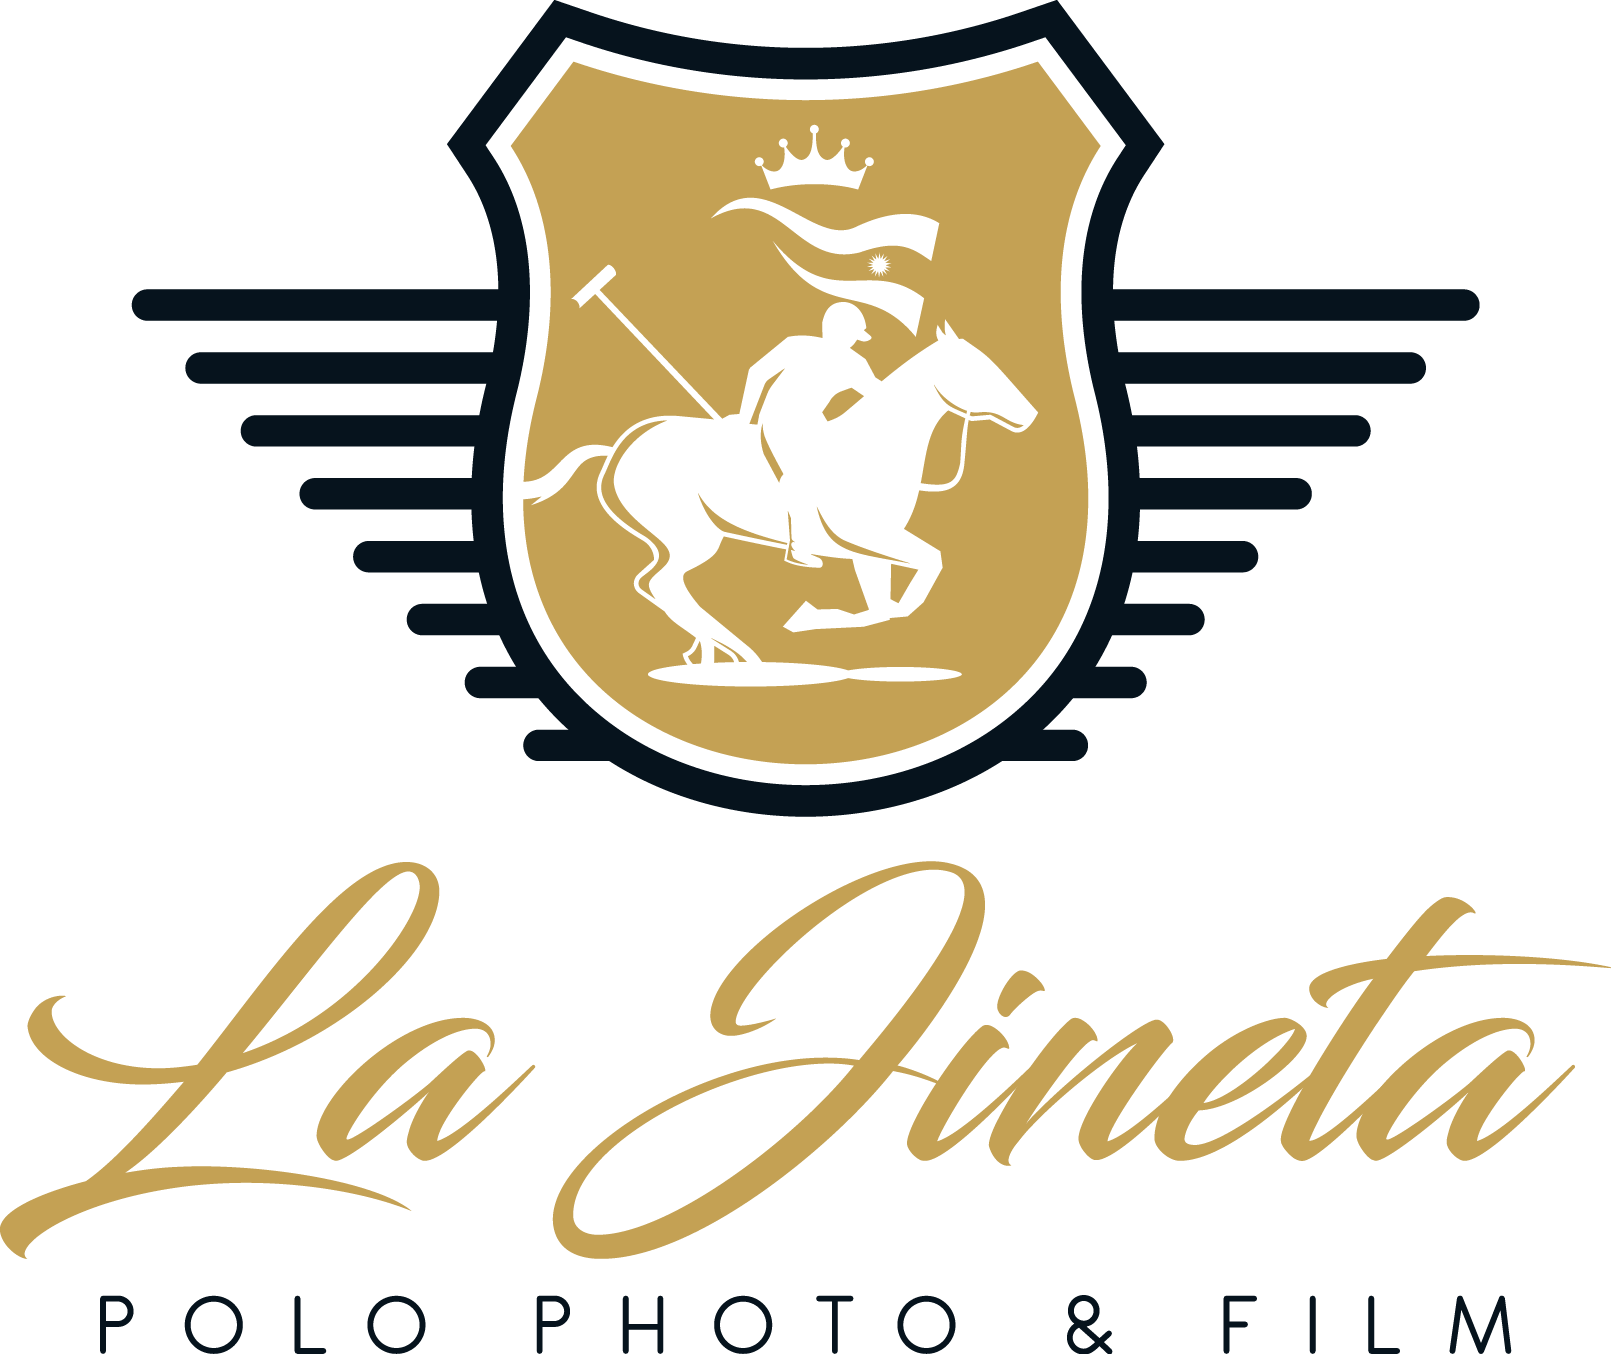 LA JINETA - PROFESSIONAL POLO PHOTOGRAPHY - EUROPE - UAE - ARGENTINA